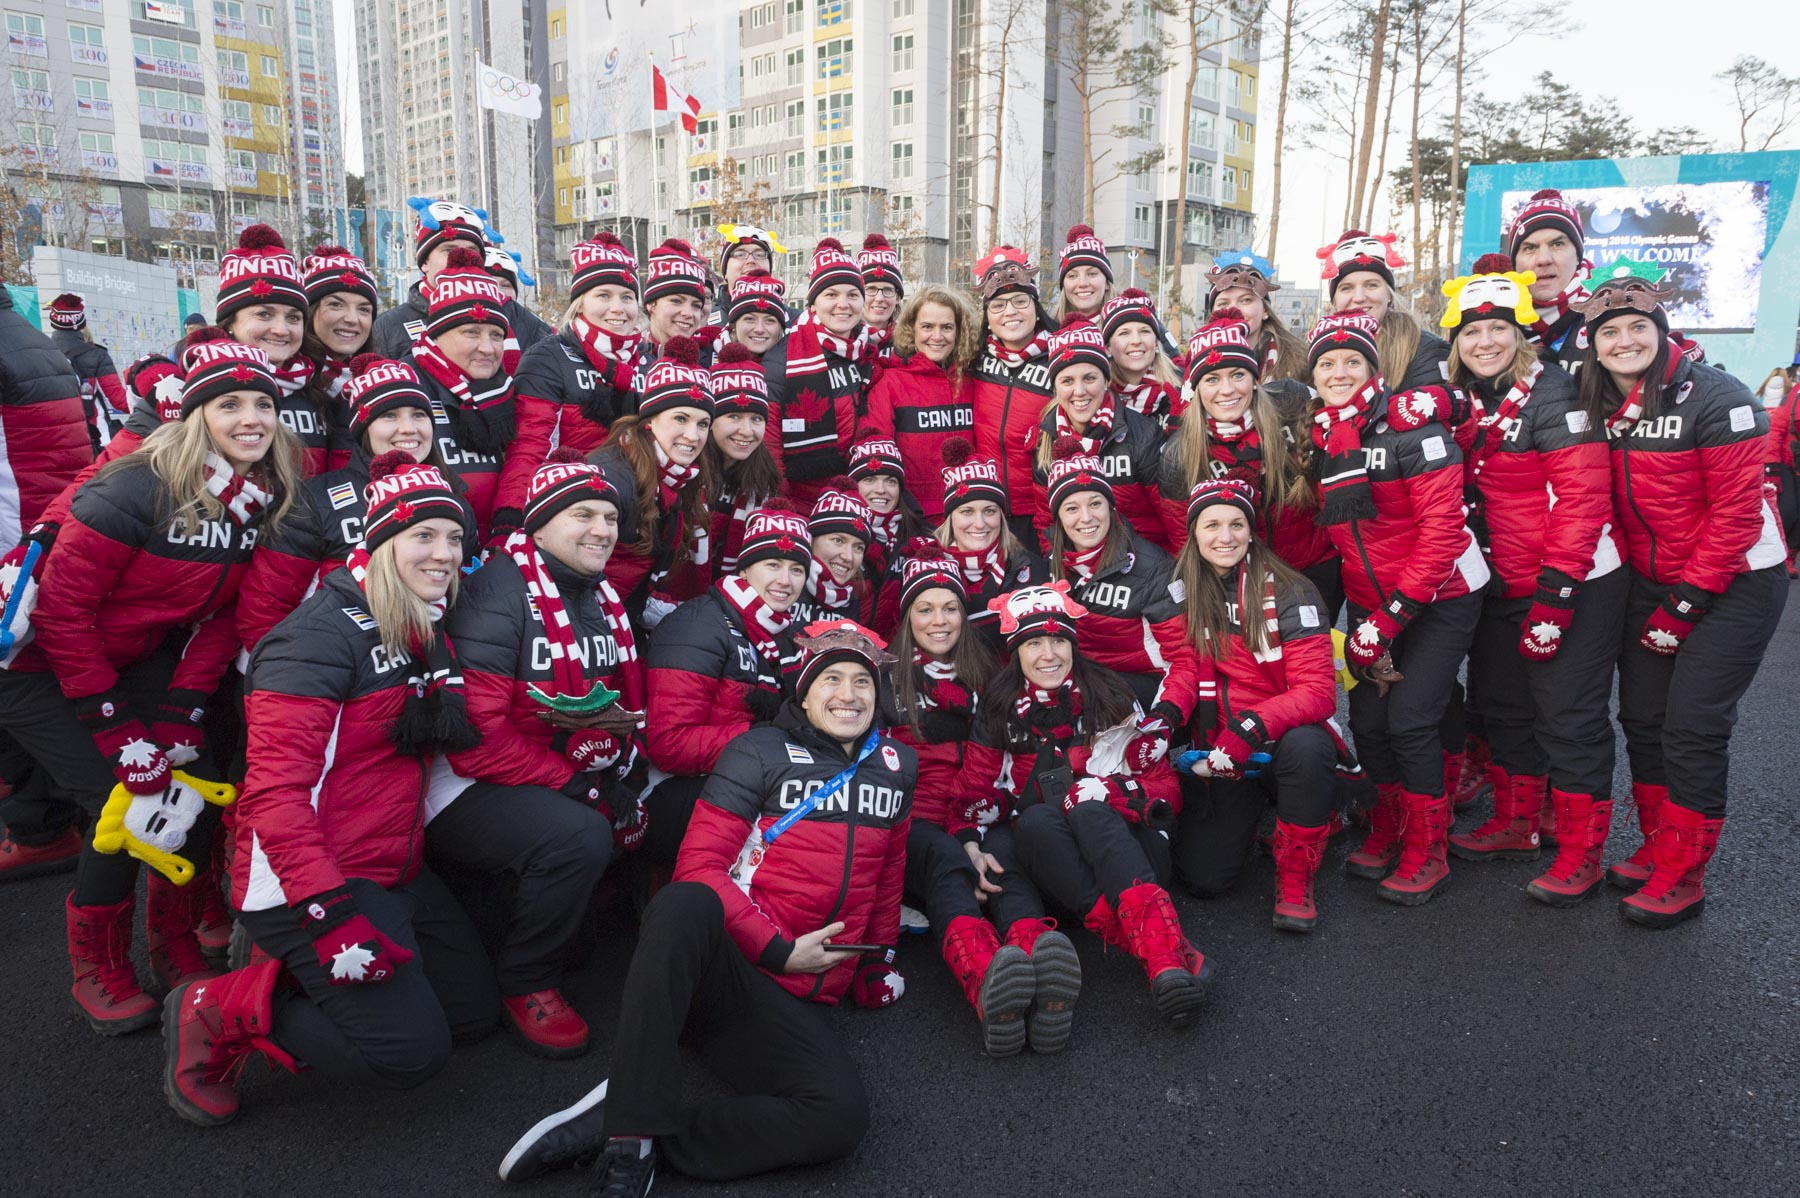 The Governor General met with the Women's Ice Hockey Team and wished them good luck.